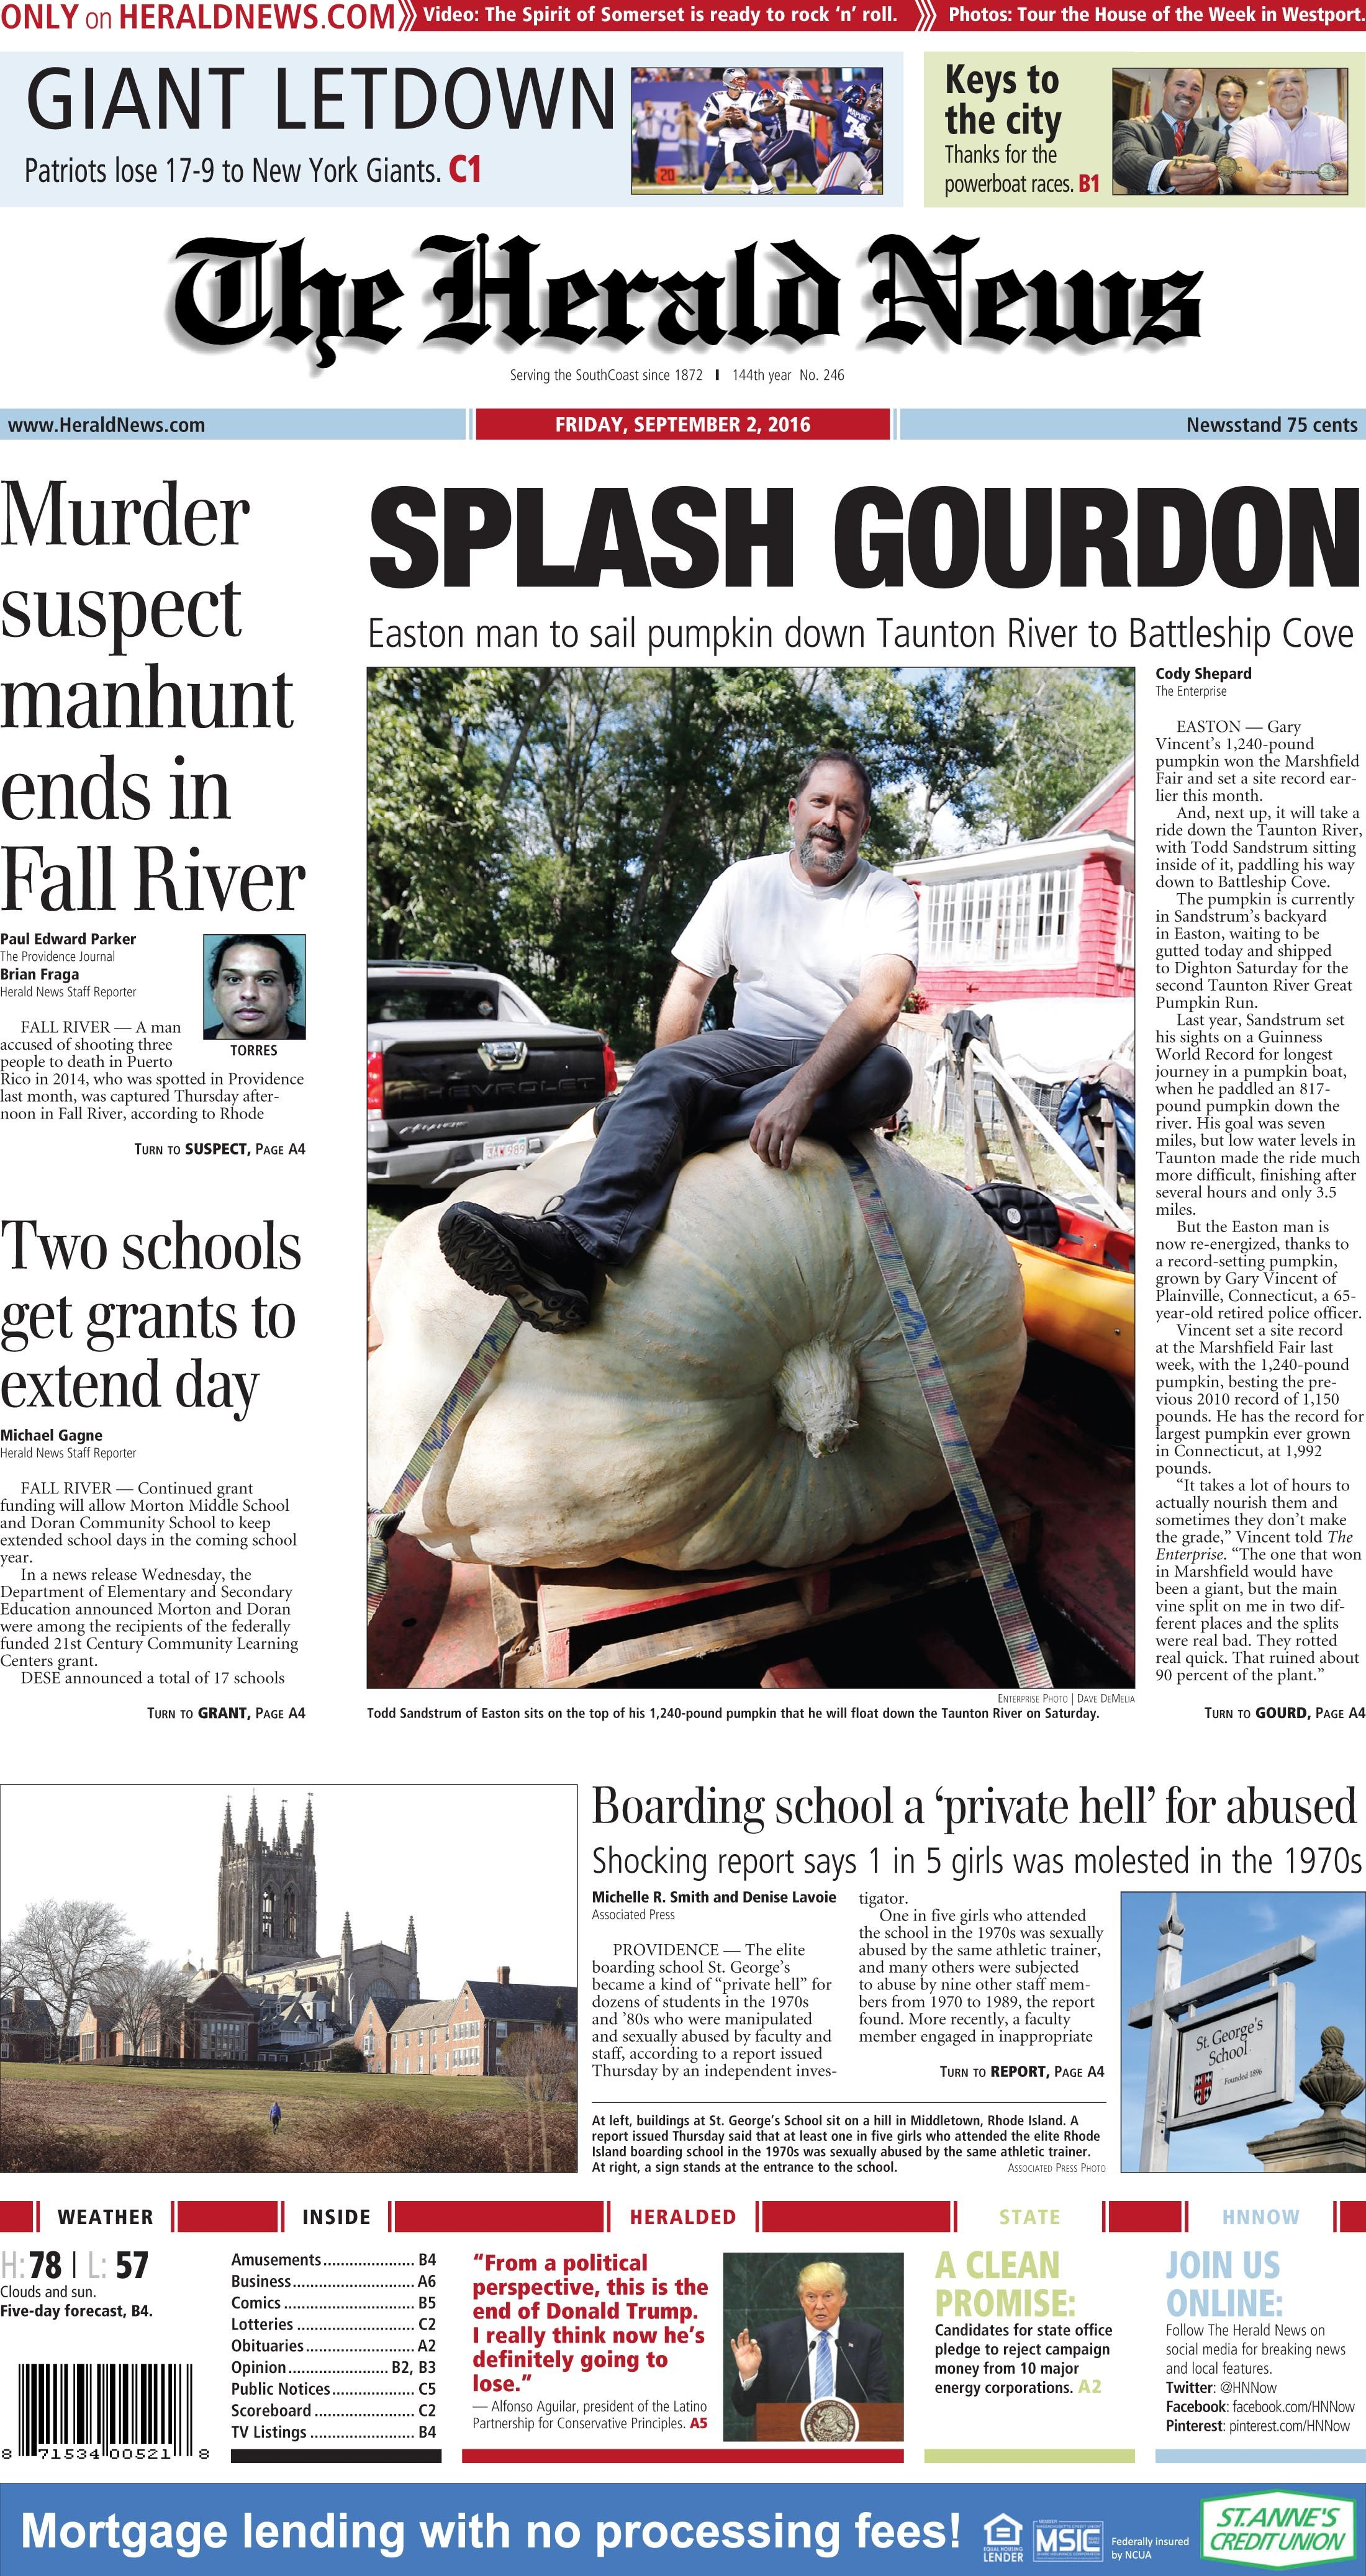 The Front Page Of The Herald News For Friday Sept 2 2016 Patriots Lose New York Giants Fall River